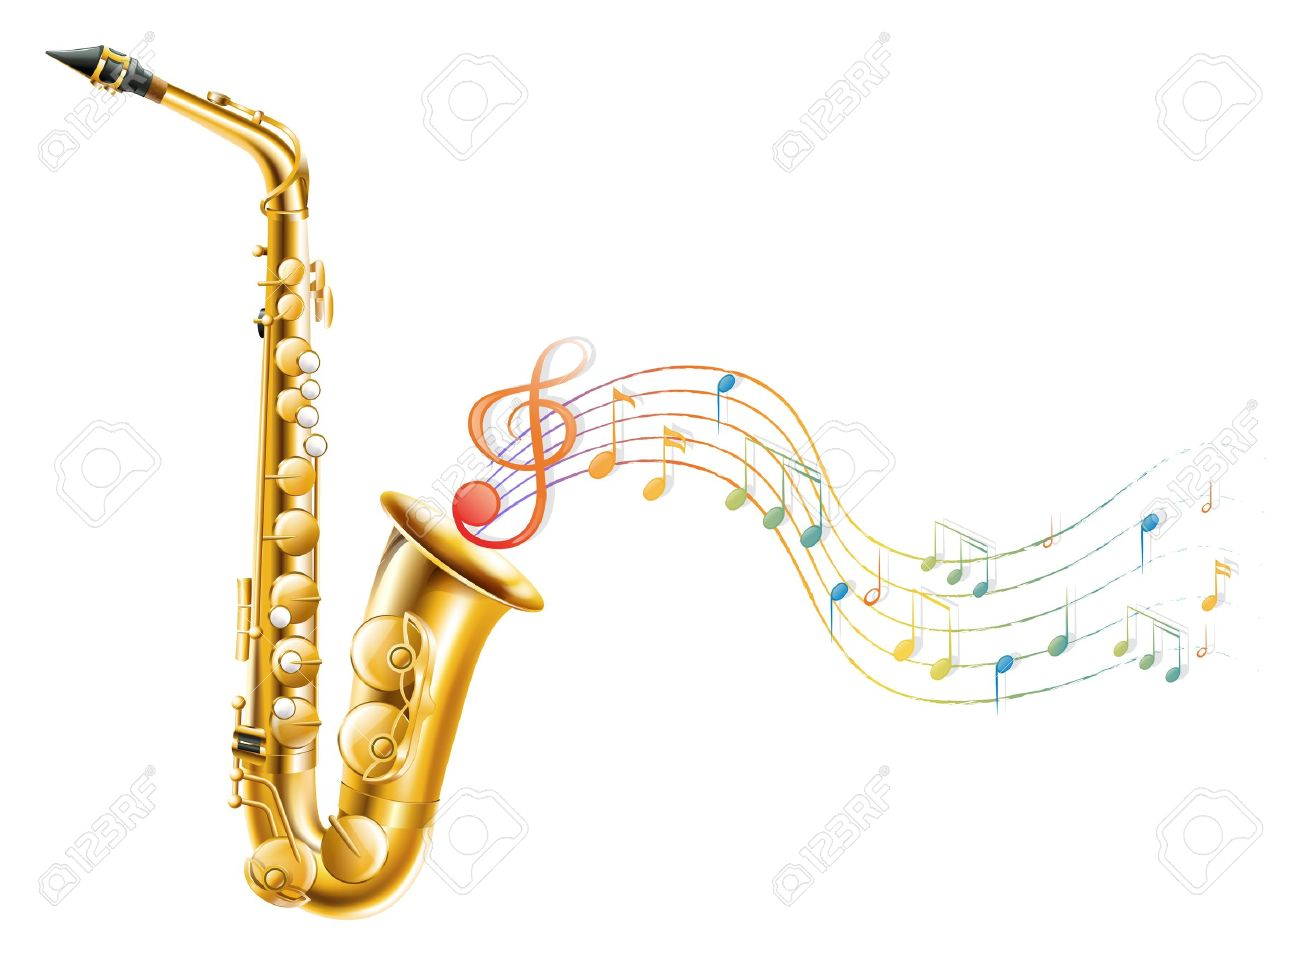 Musical notes staff background on white vector by tassel78 image - Gold Music Notes Illustration Of A Golden Saxophone With Musical Notes On A White Background